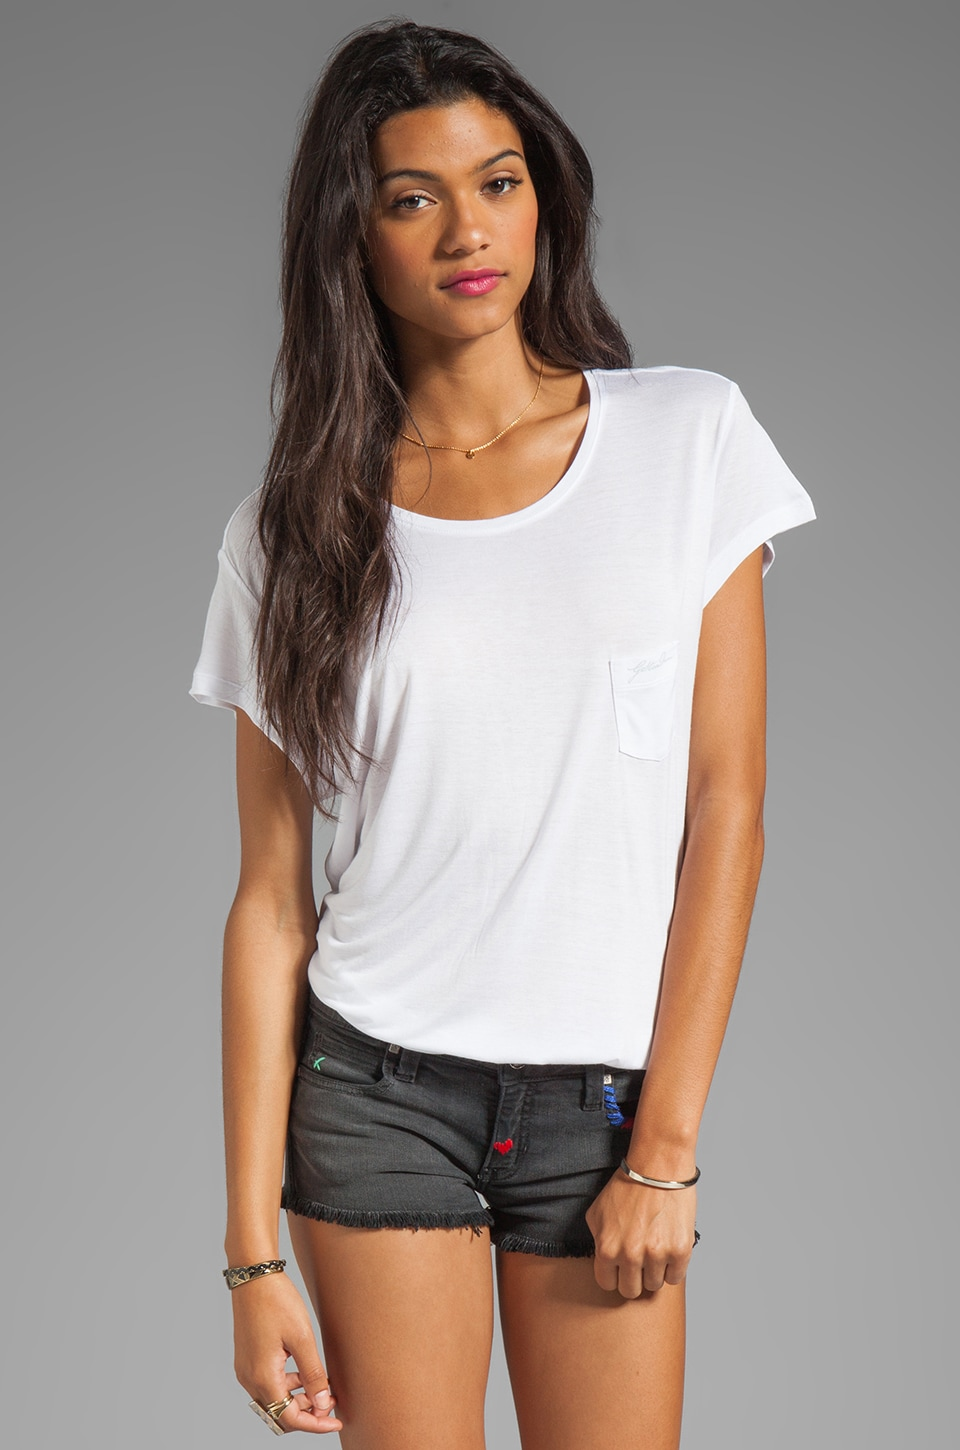 G-Star Loose R T Tee in White